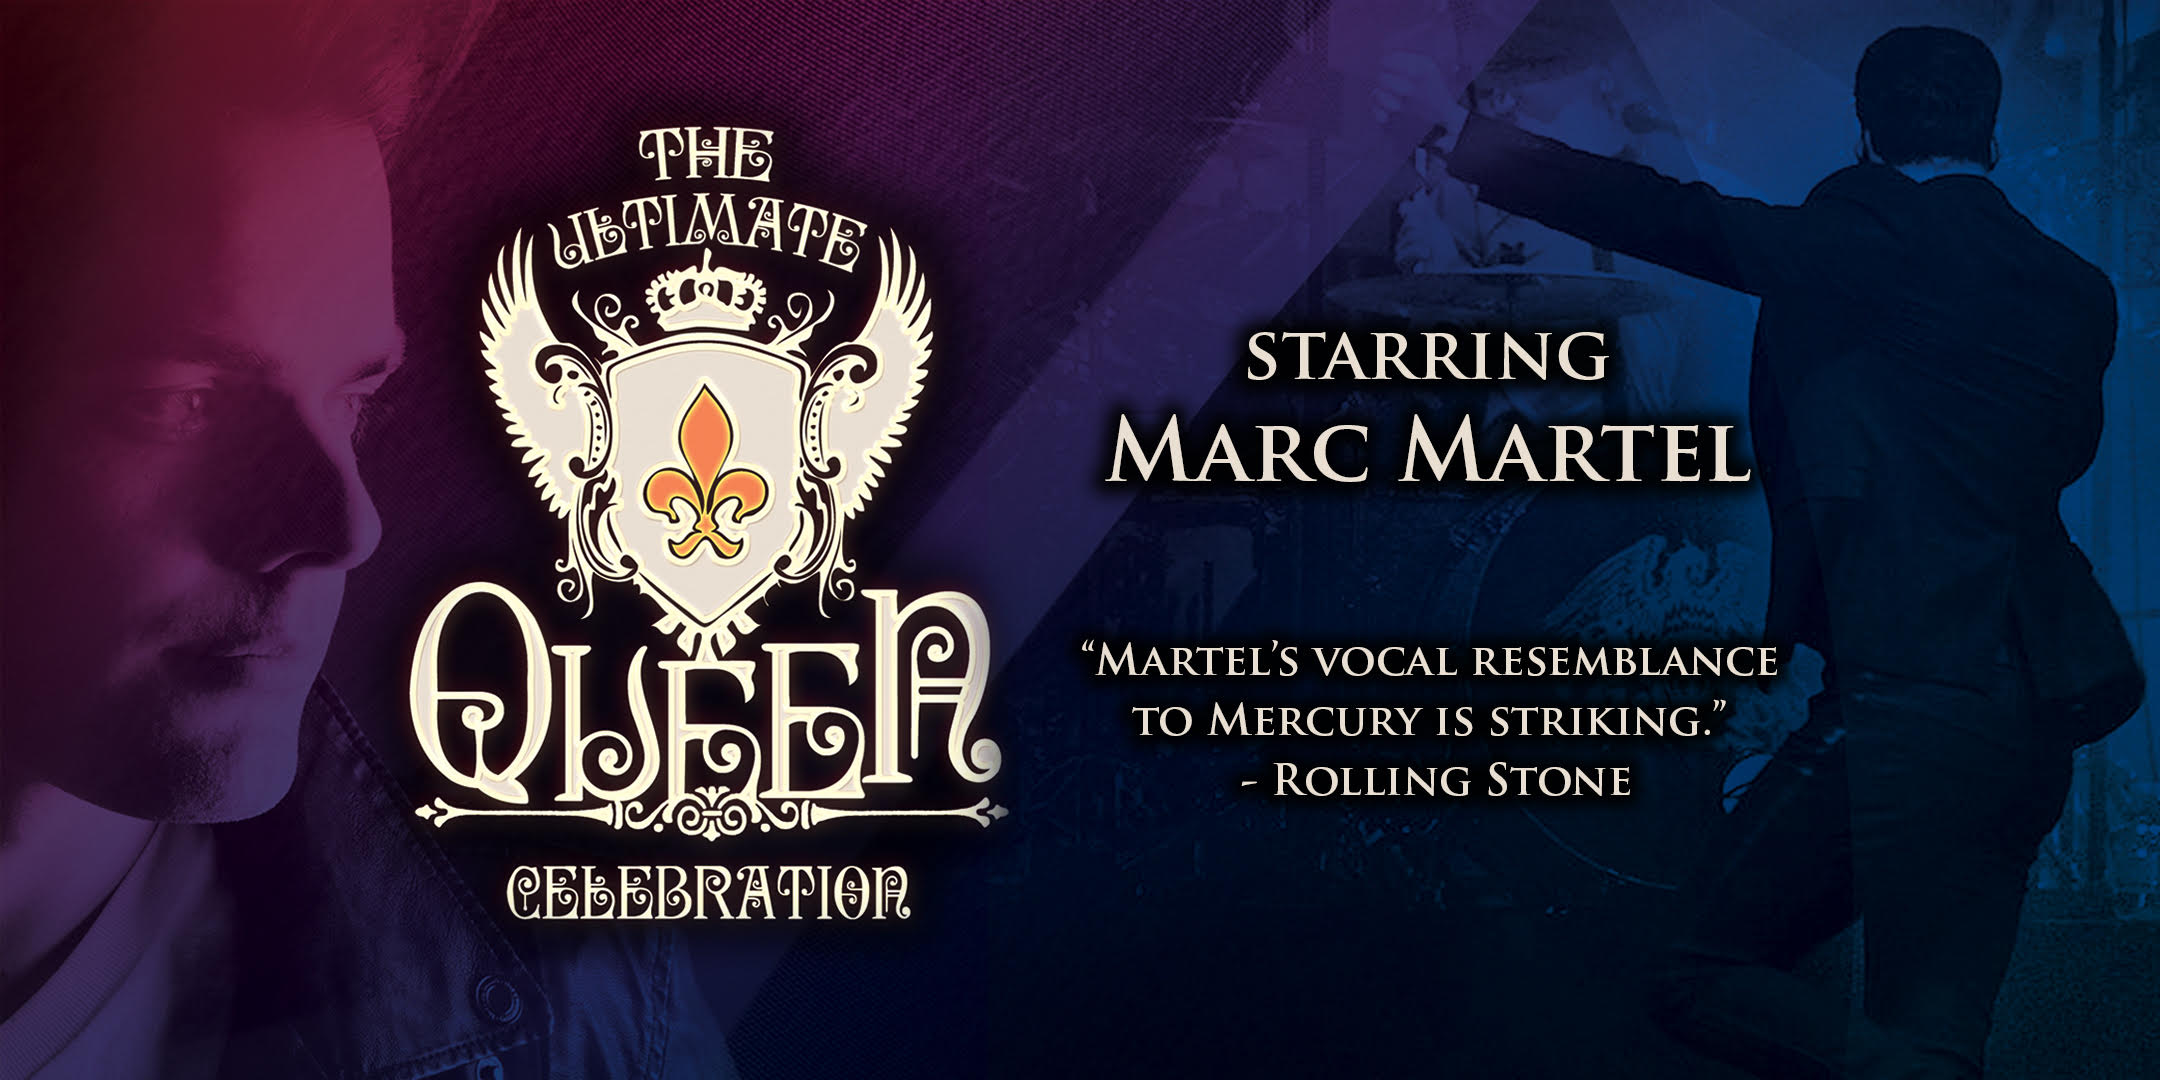 CONTEST: The Ultimate Queen Celebration starring Marc Martel